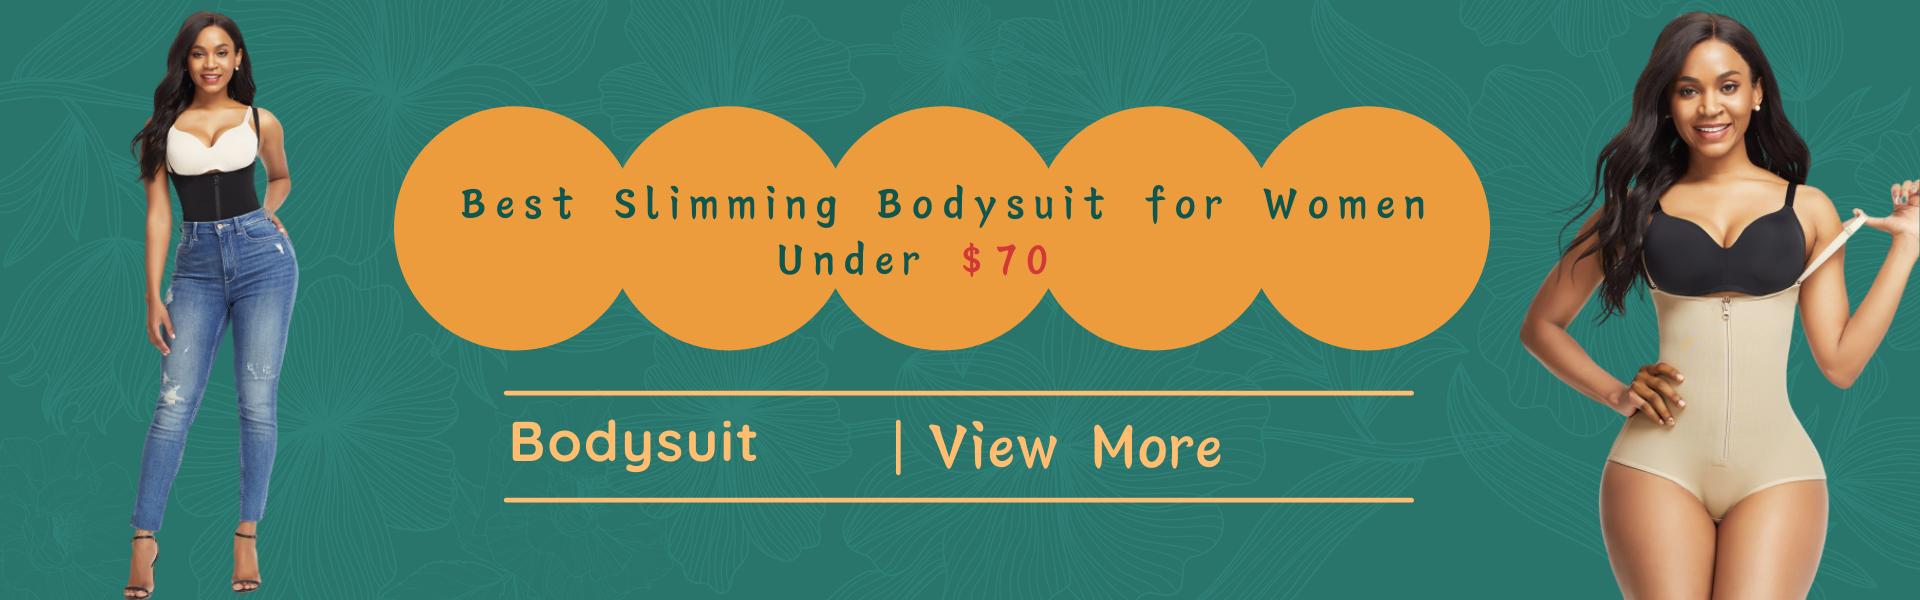 5 Best Slimming Bodysuit for Women Under $70